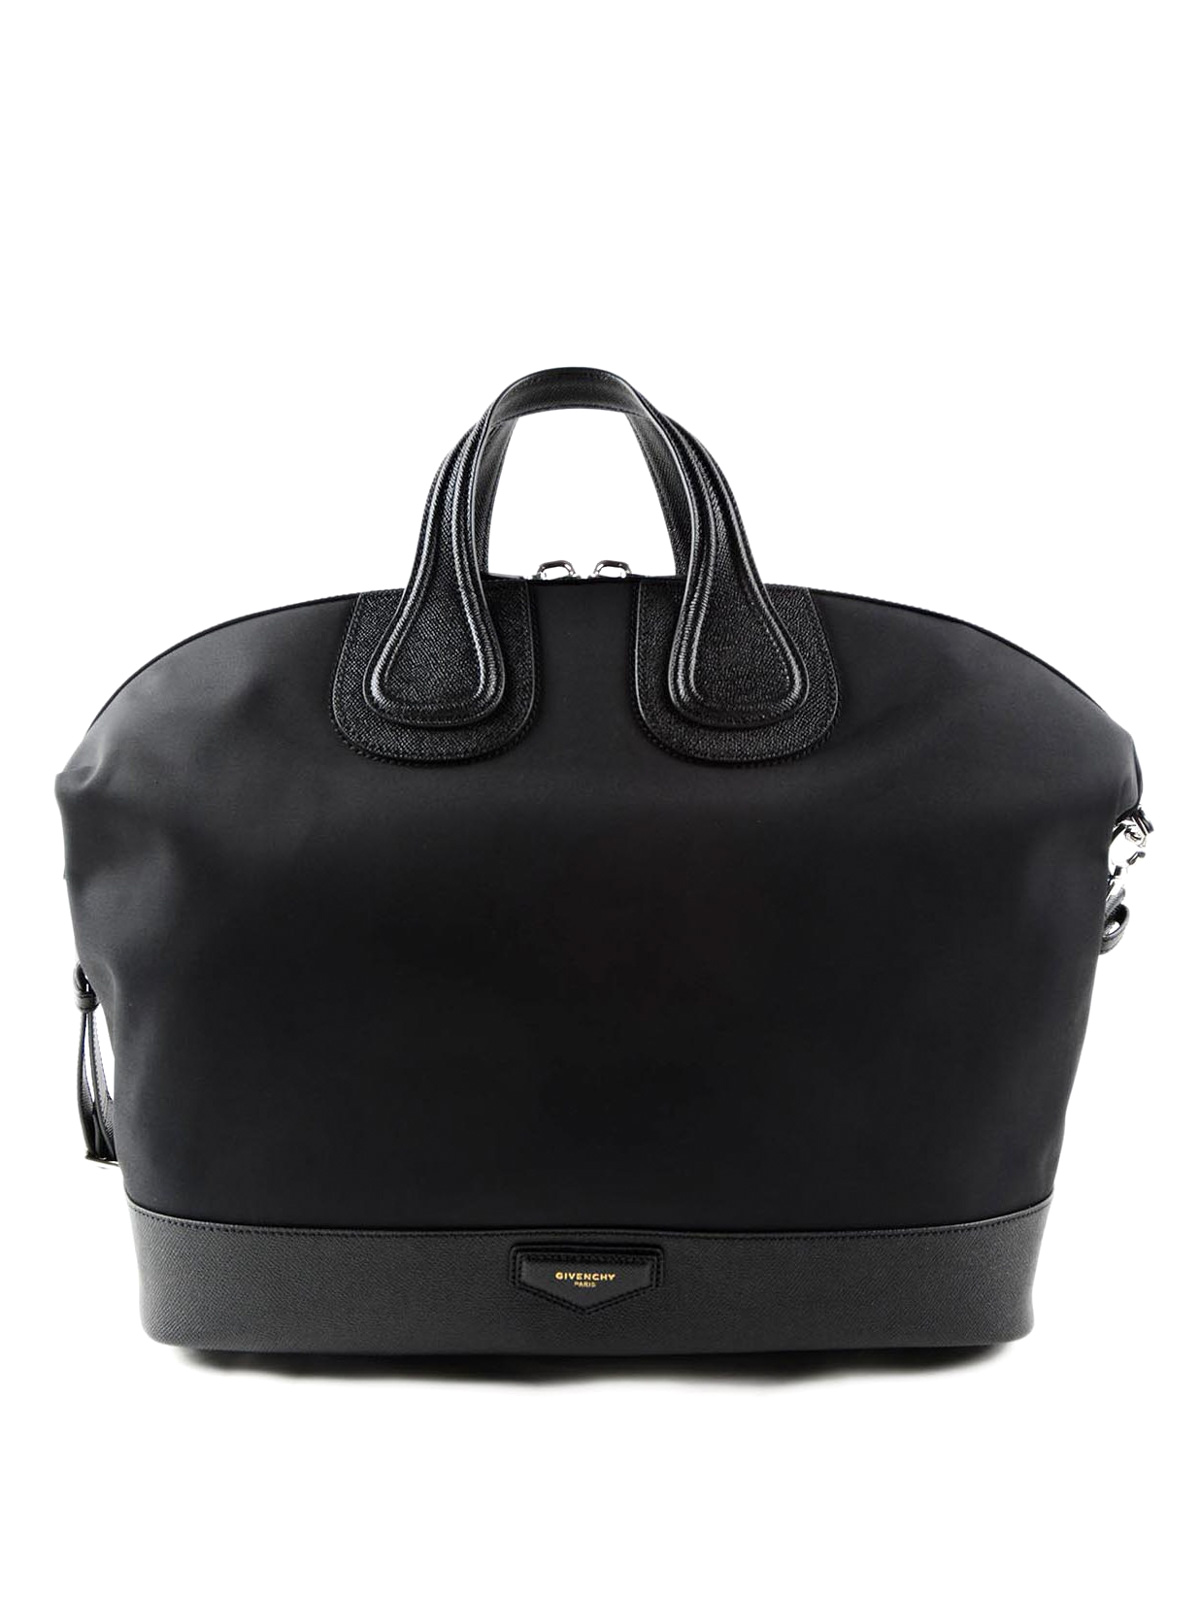 9016e2dfba1f Givenchy Nightingale Tote Bag Price | J'agis pour la nature